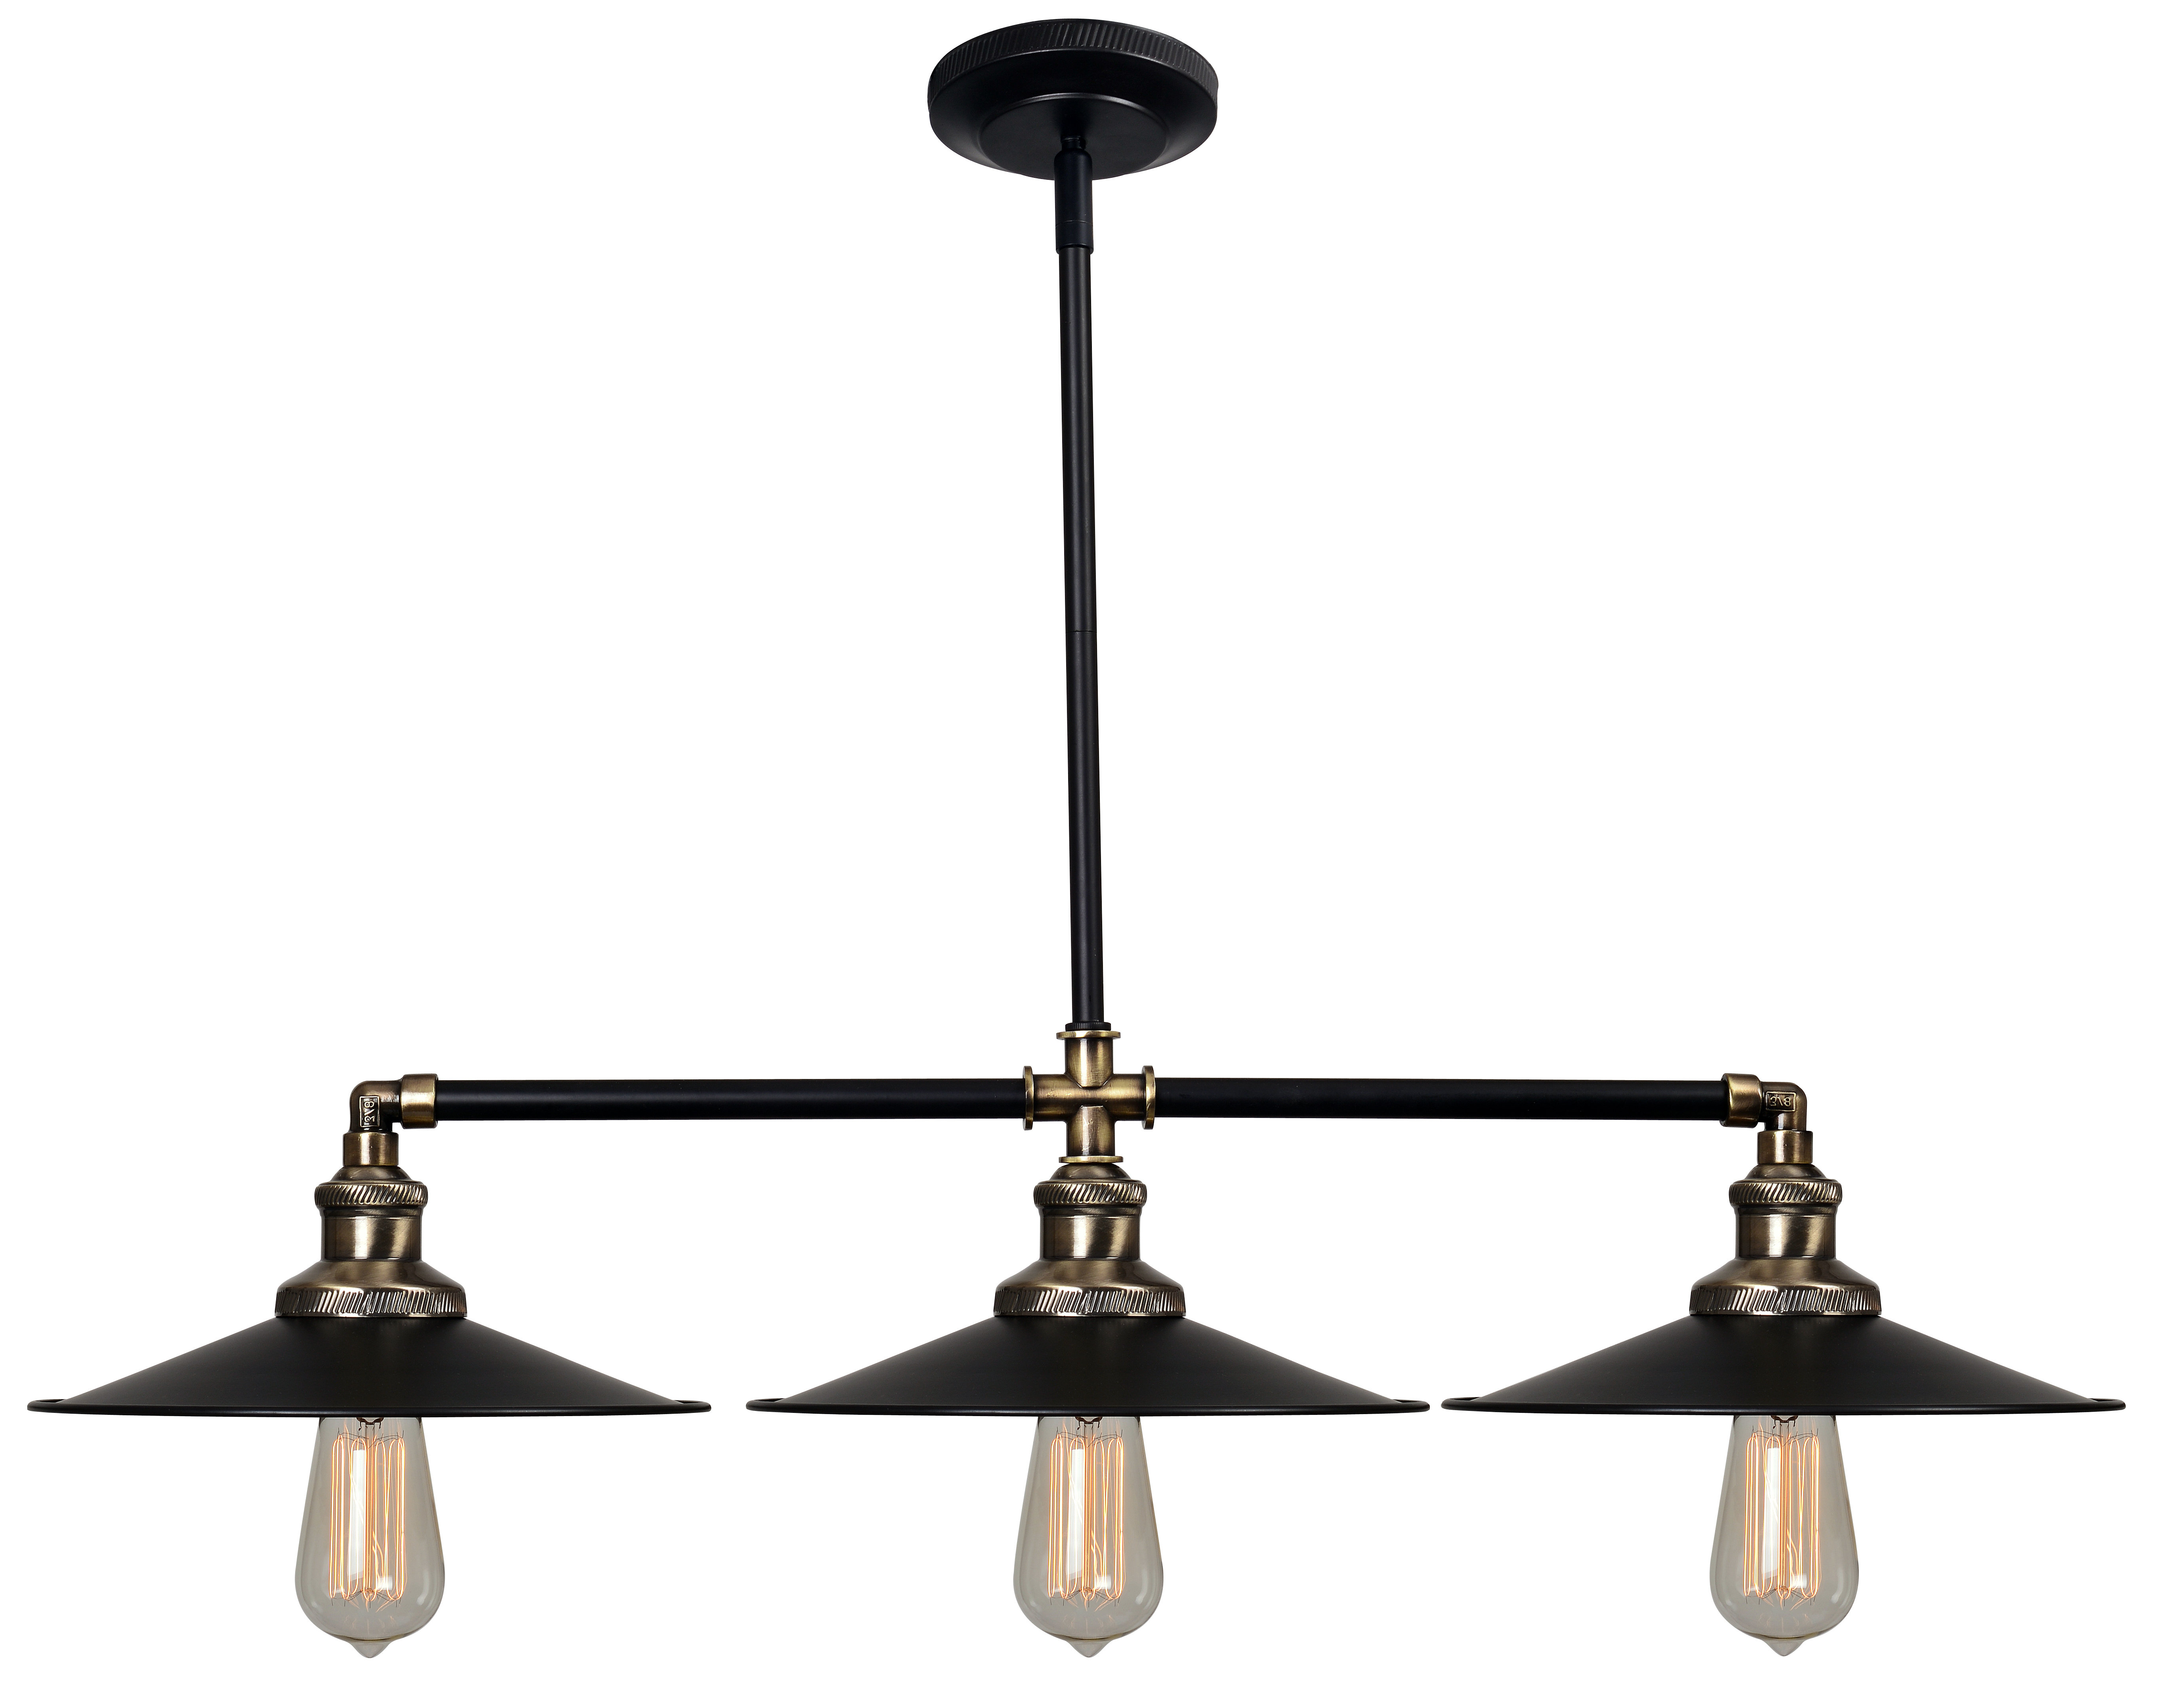 Famous Trent Austin Design Dobson 3 Light Kitchen Island Linear Pendant With Regard To Martinique 3 Light Kitchen Island Dome Pendants (Gallery 14 of 20)